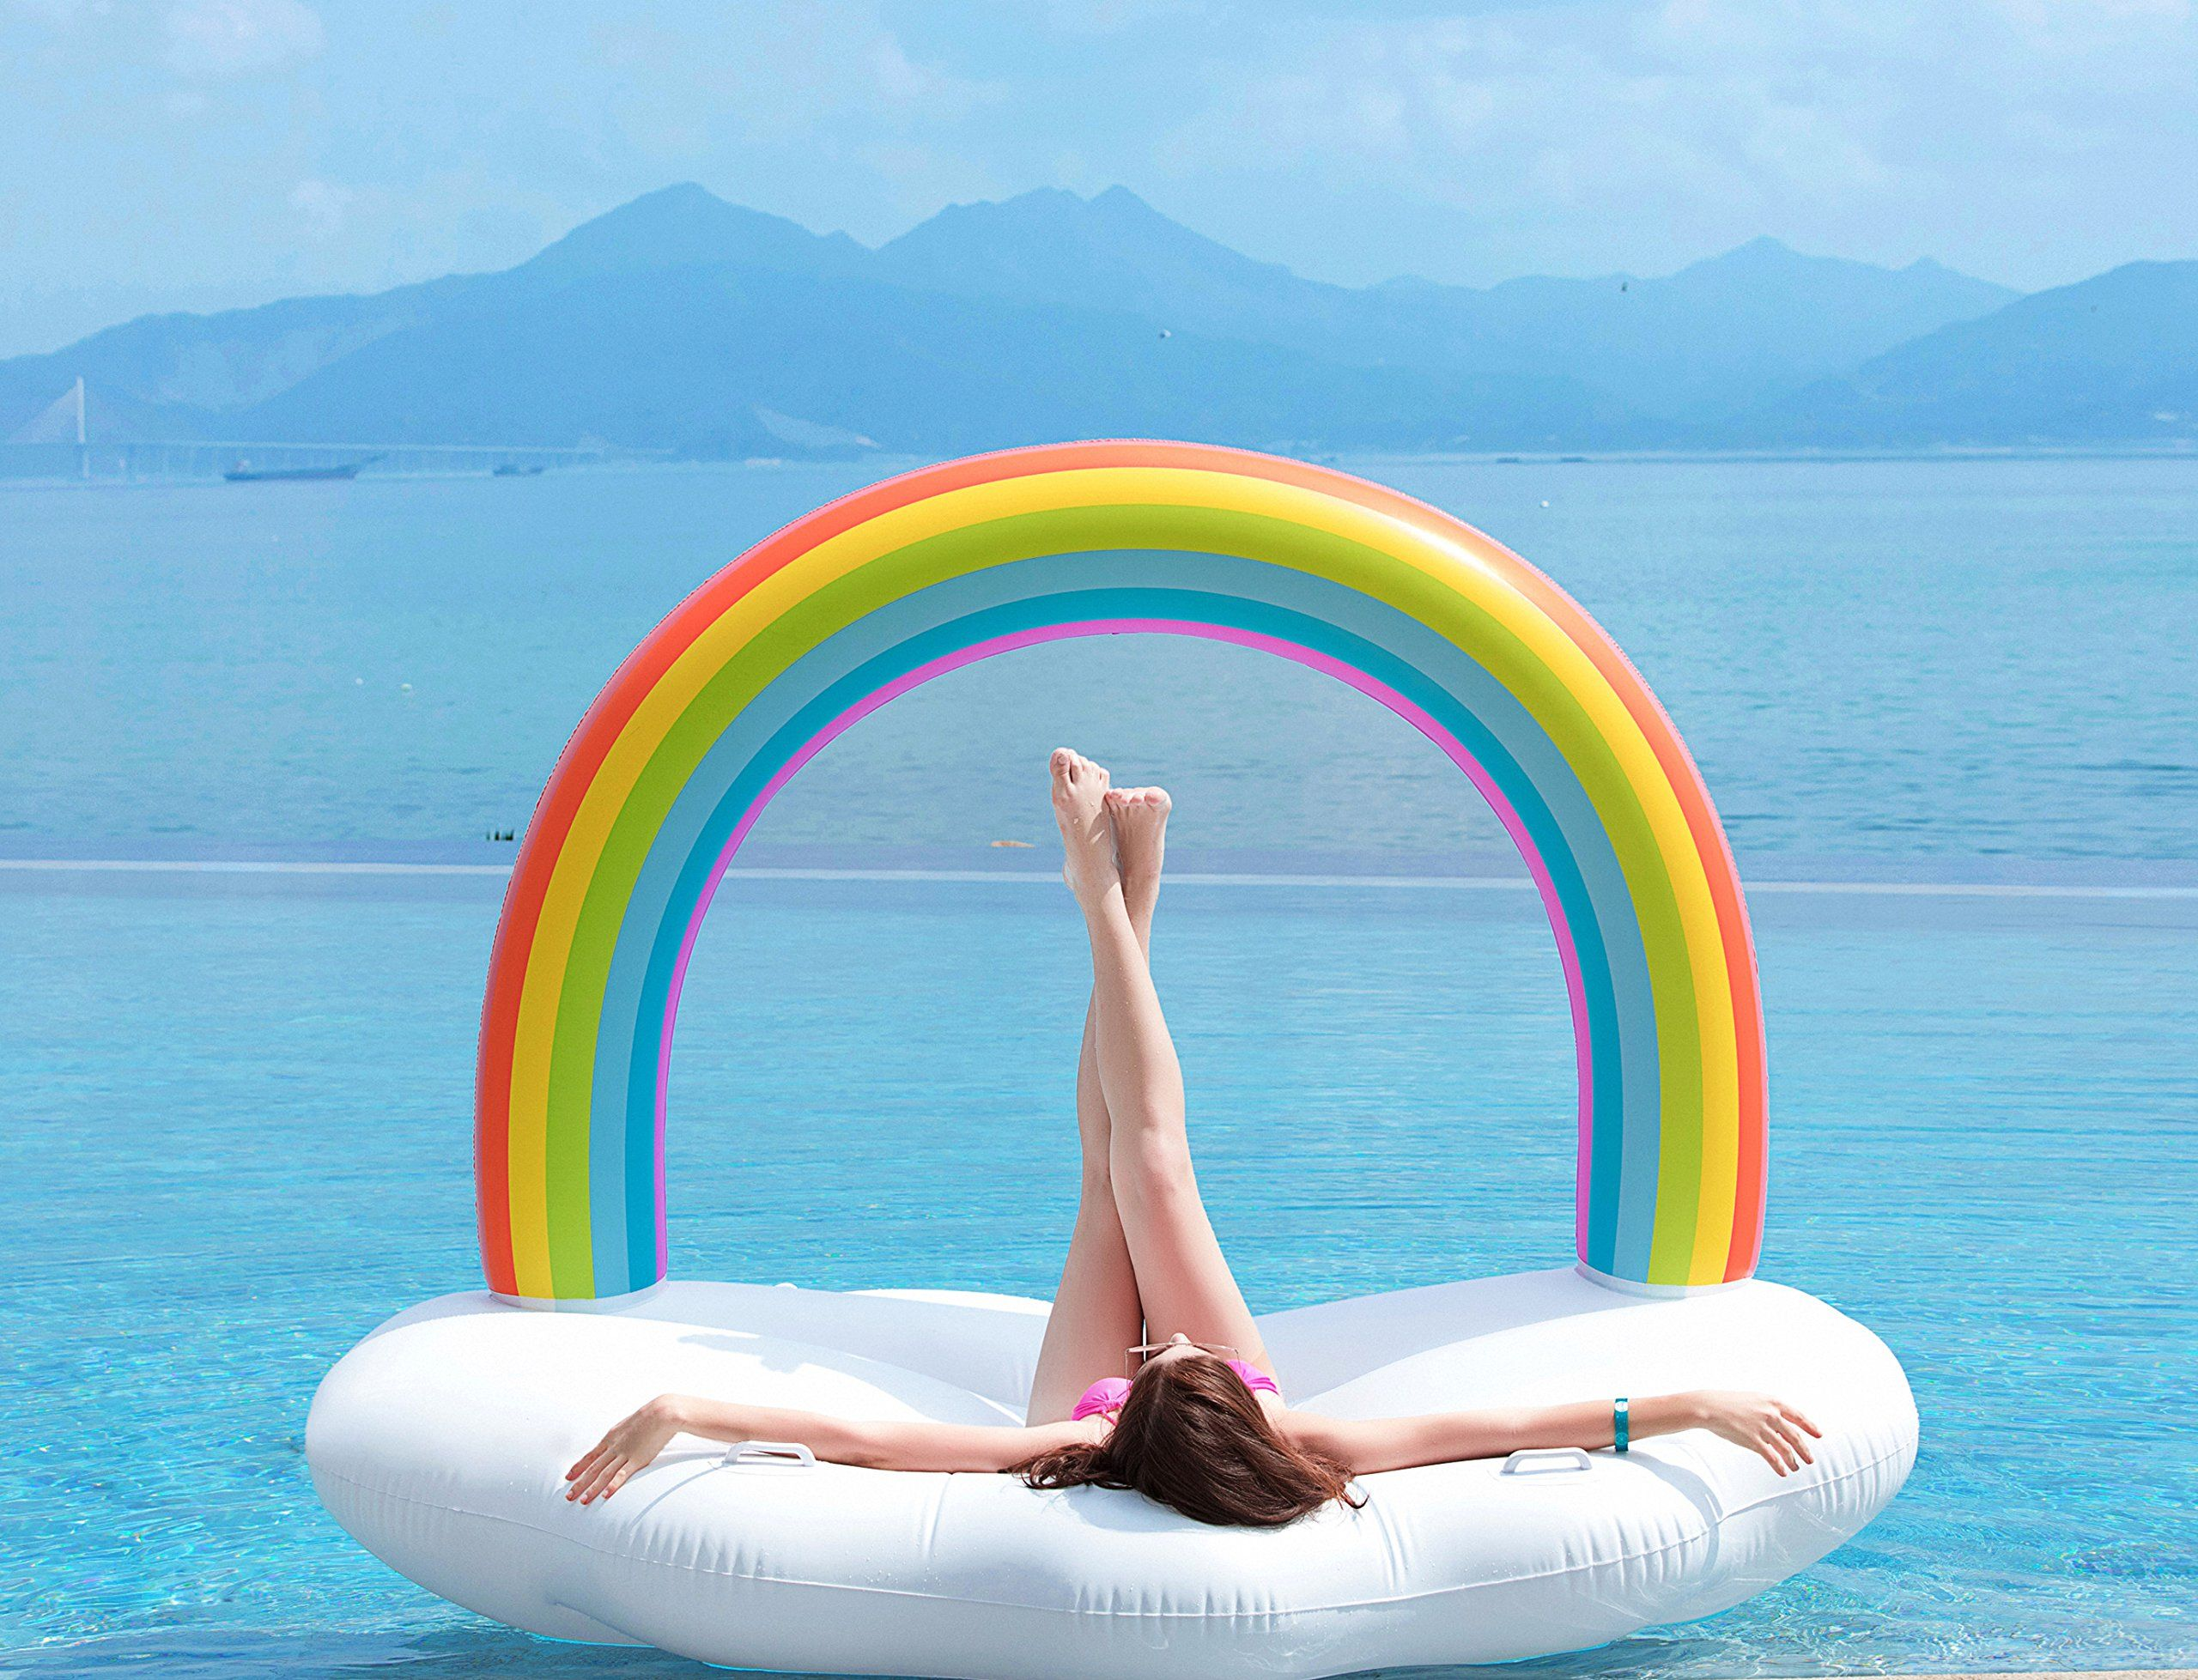 New Fashion Pineapple Floats Raft Air Mattress Lifebuoy Gaint Summer Inflatable Ring Swimming Pool Swimming Interesting Water Sports Toys Terrific Value Sports & Entertainment